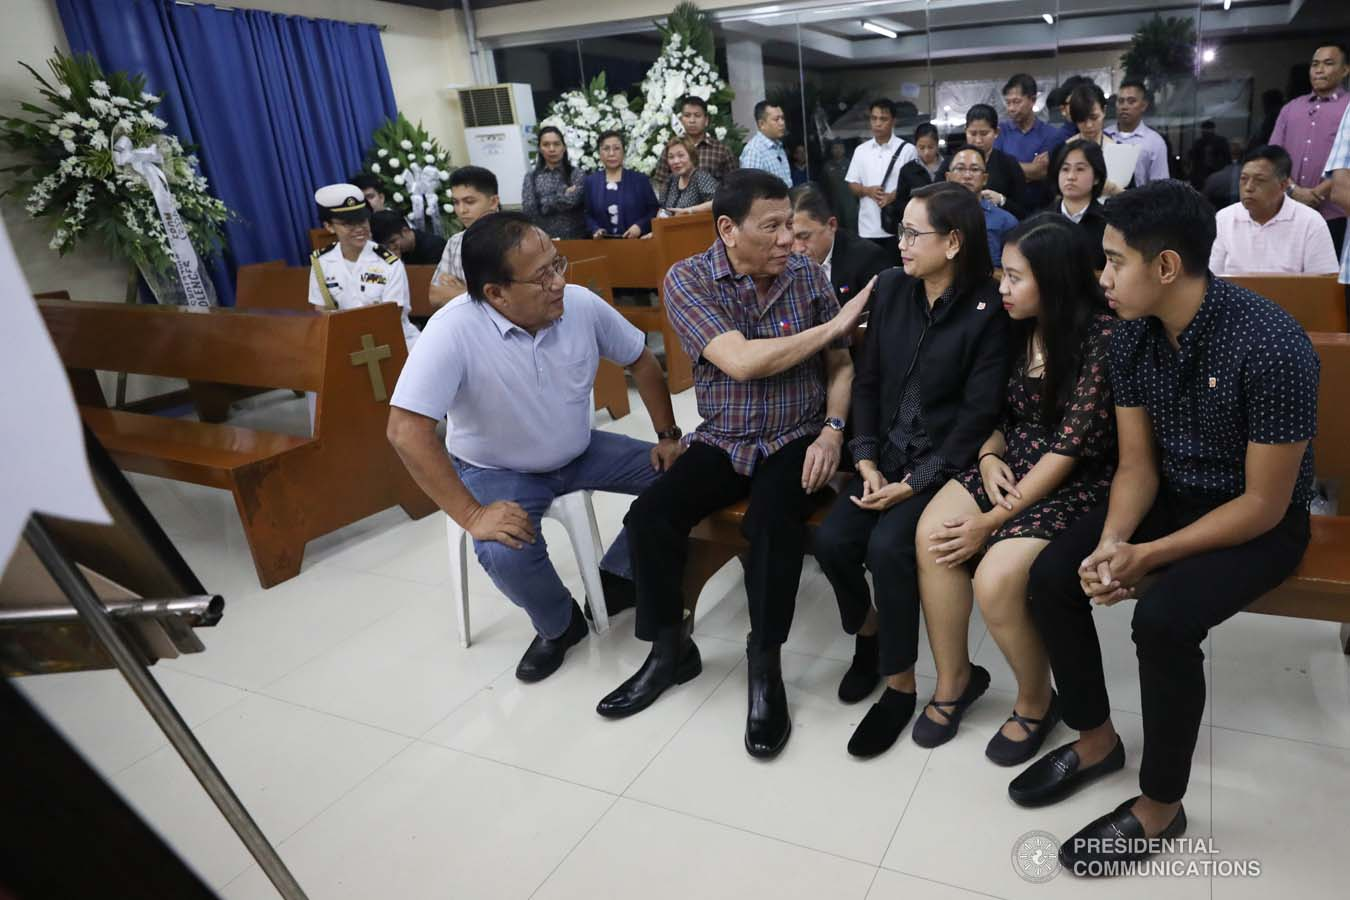 President Rodrigo Roa Duterte commiserates with the family of the late Captain Jesus Hernandez as he visits the wake at the Loyola Memorial Park in Parañaque City on September 5, 2019. Hernandez was the pilot of the Beechcraft King Air 350 with registry number RP-C2296 that crashed in Calamba City, Laguna last September 1. SIMEON CELI JR./PRESIDENTIAL PHOTO